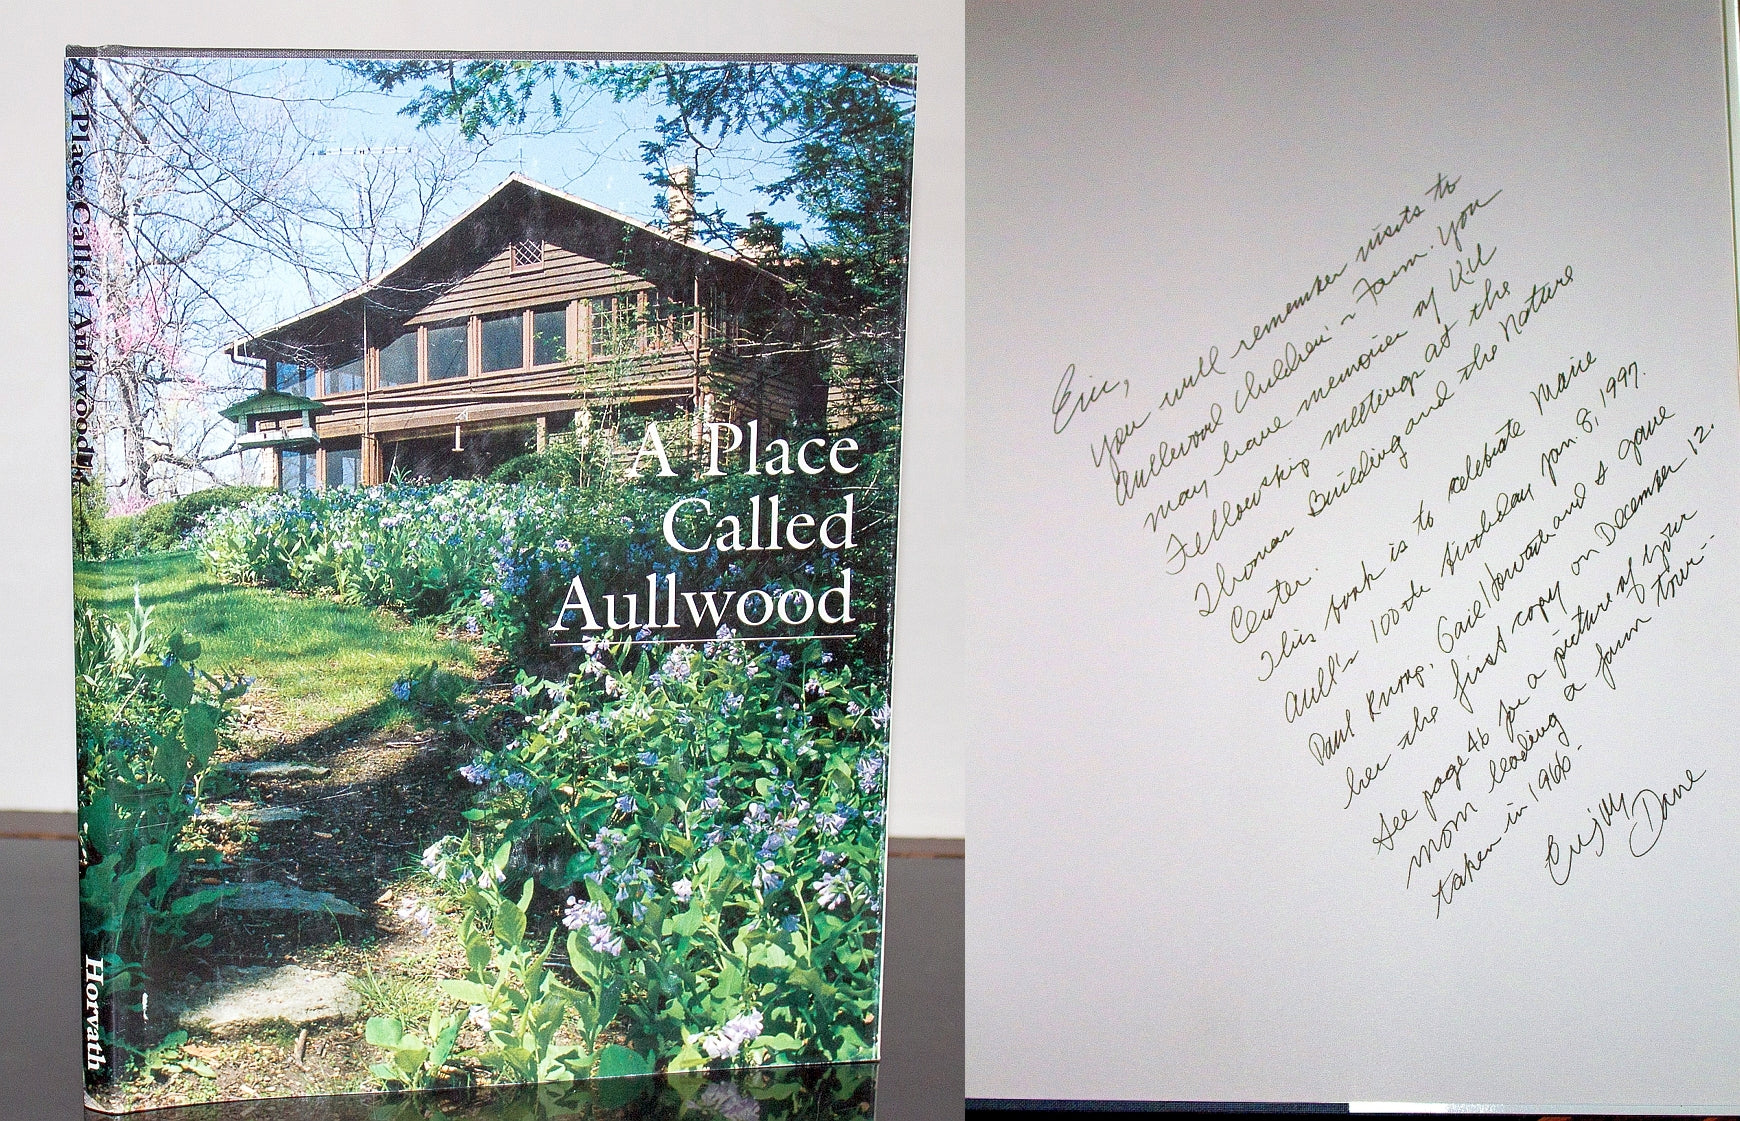 A Place Called Aullwood in Southwestern Ohio Horvath SIGNED Audubon Center Farm